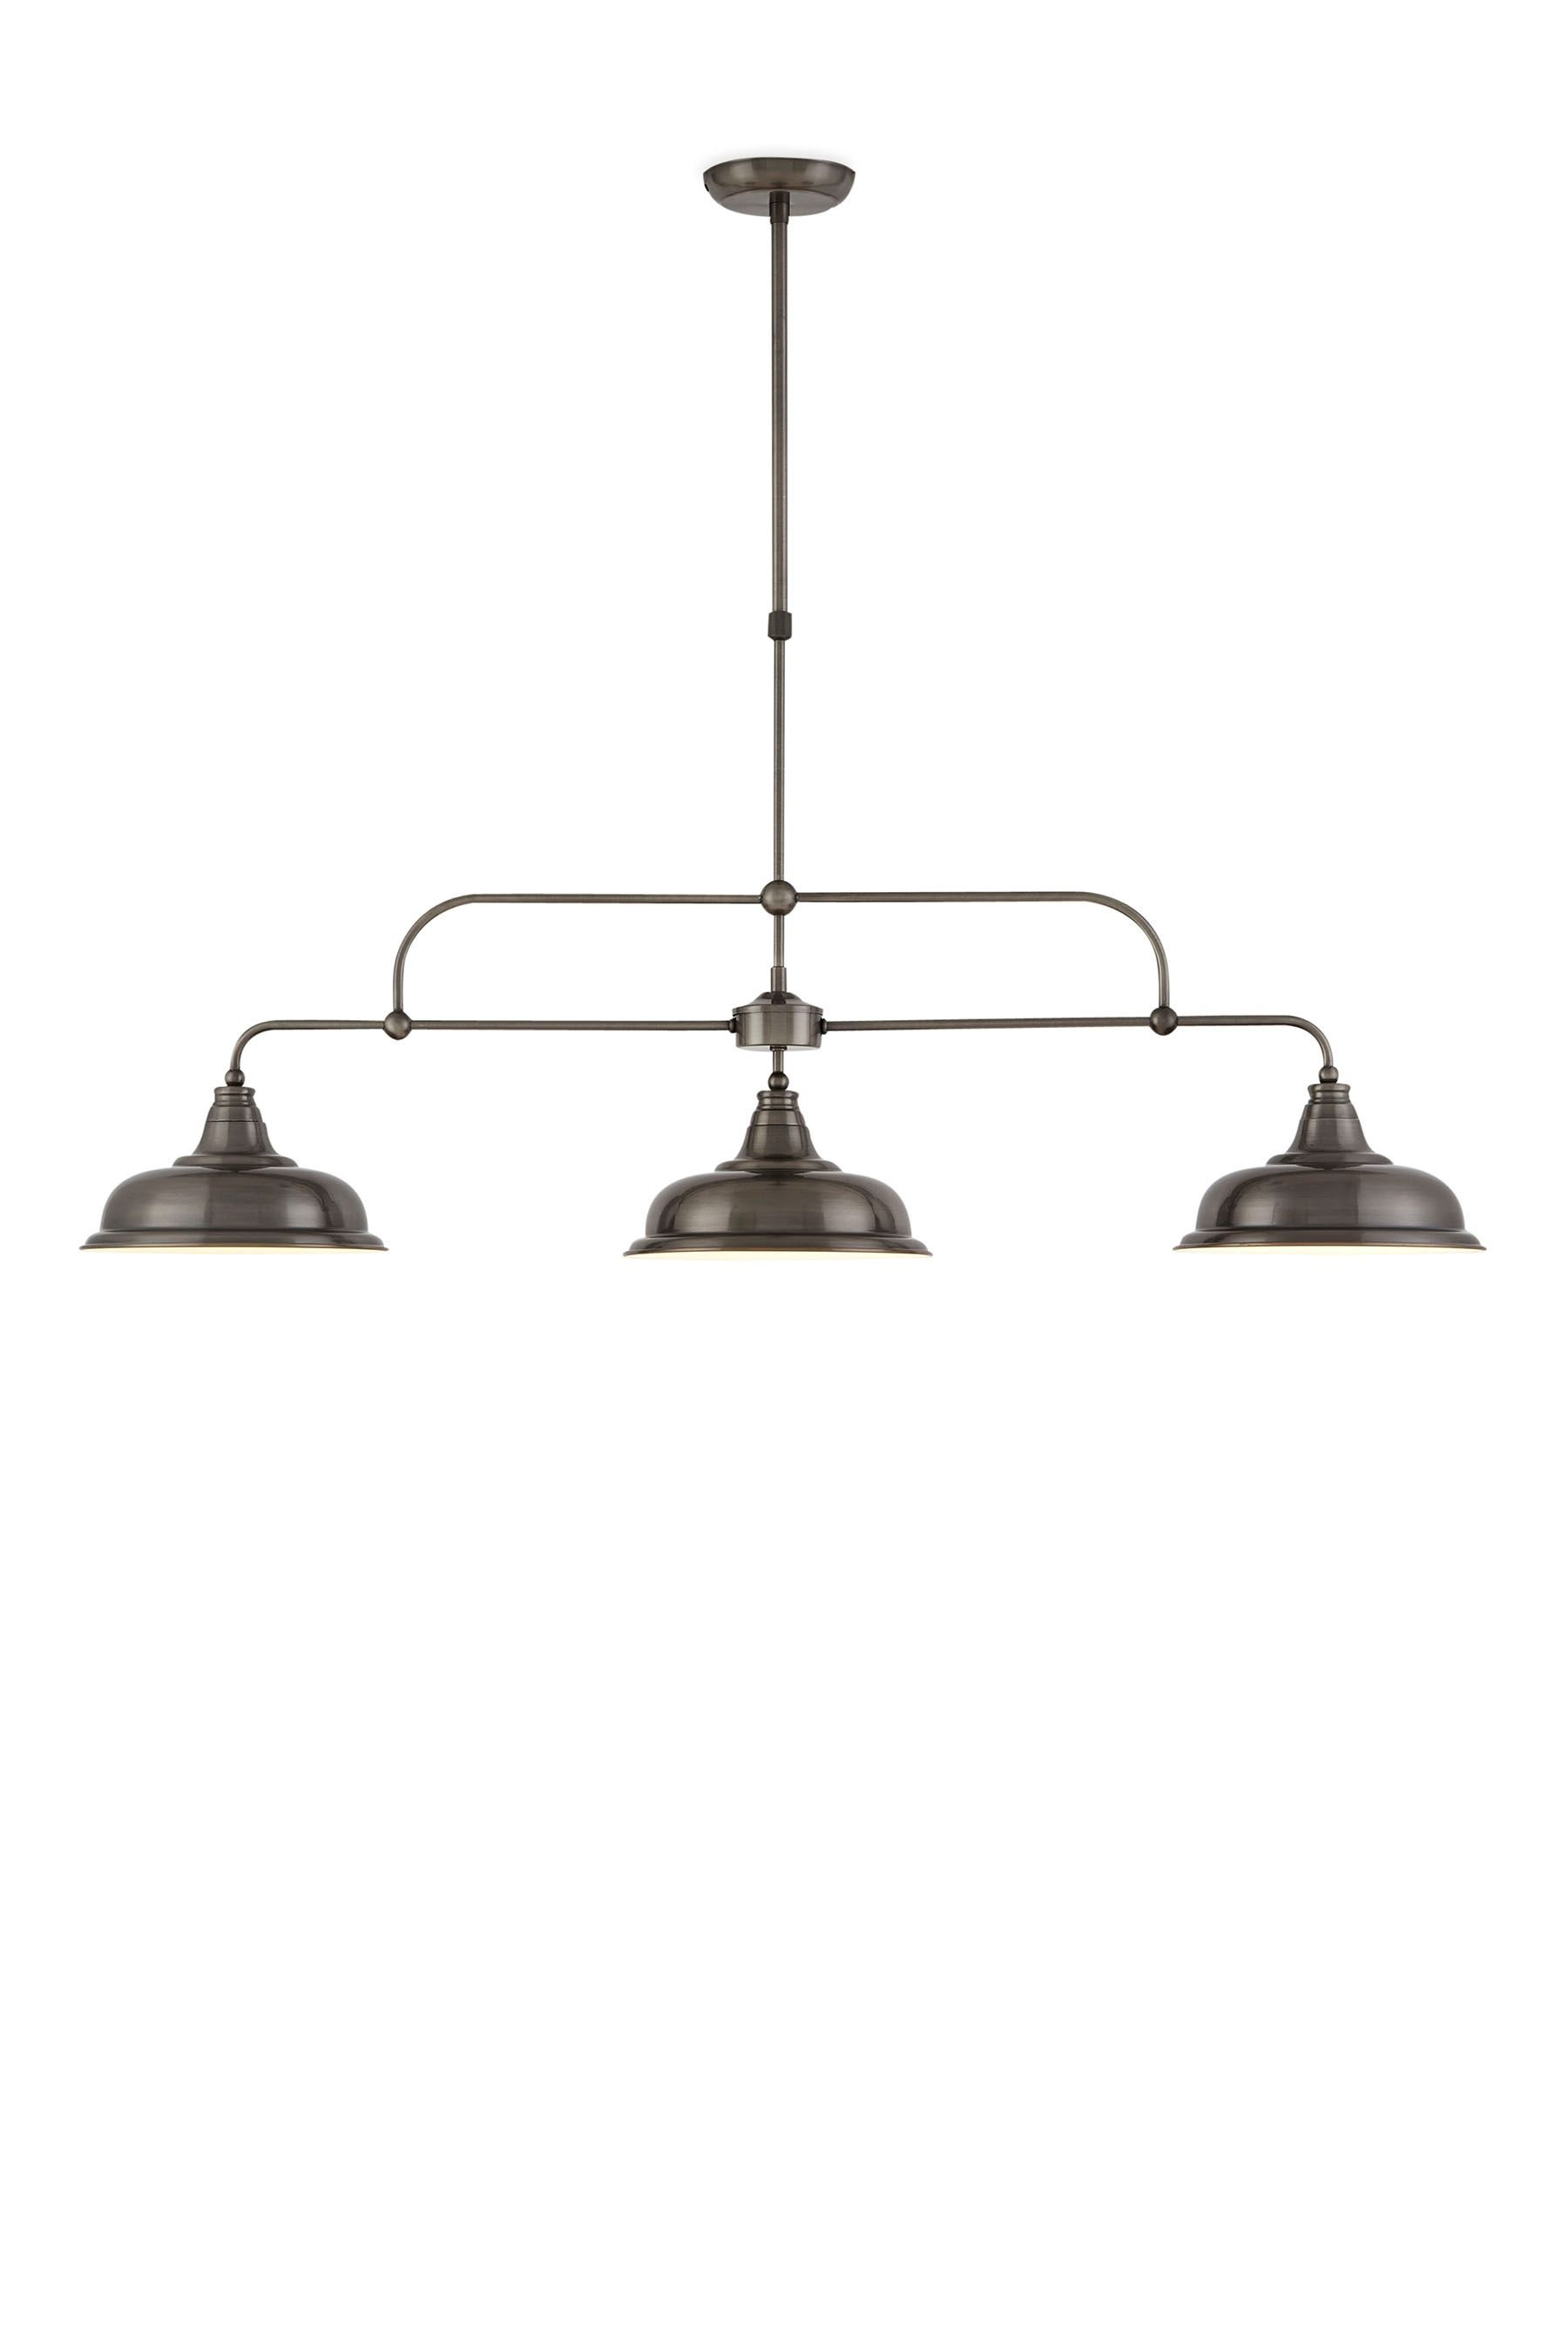 Buy Oxford 3 Light Linear Pendant From The Next UK Online